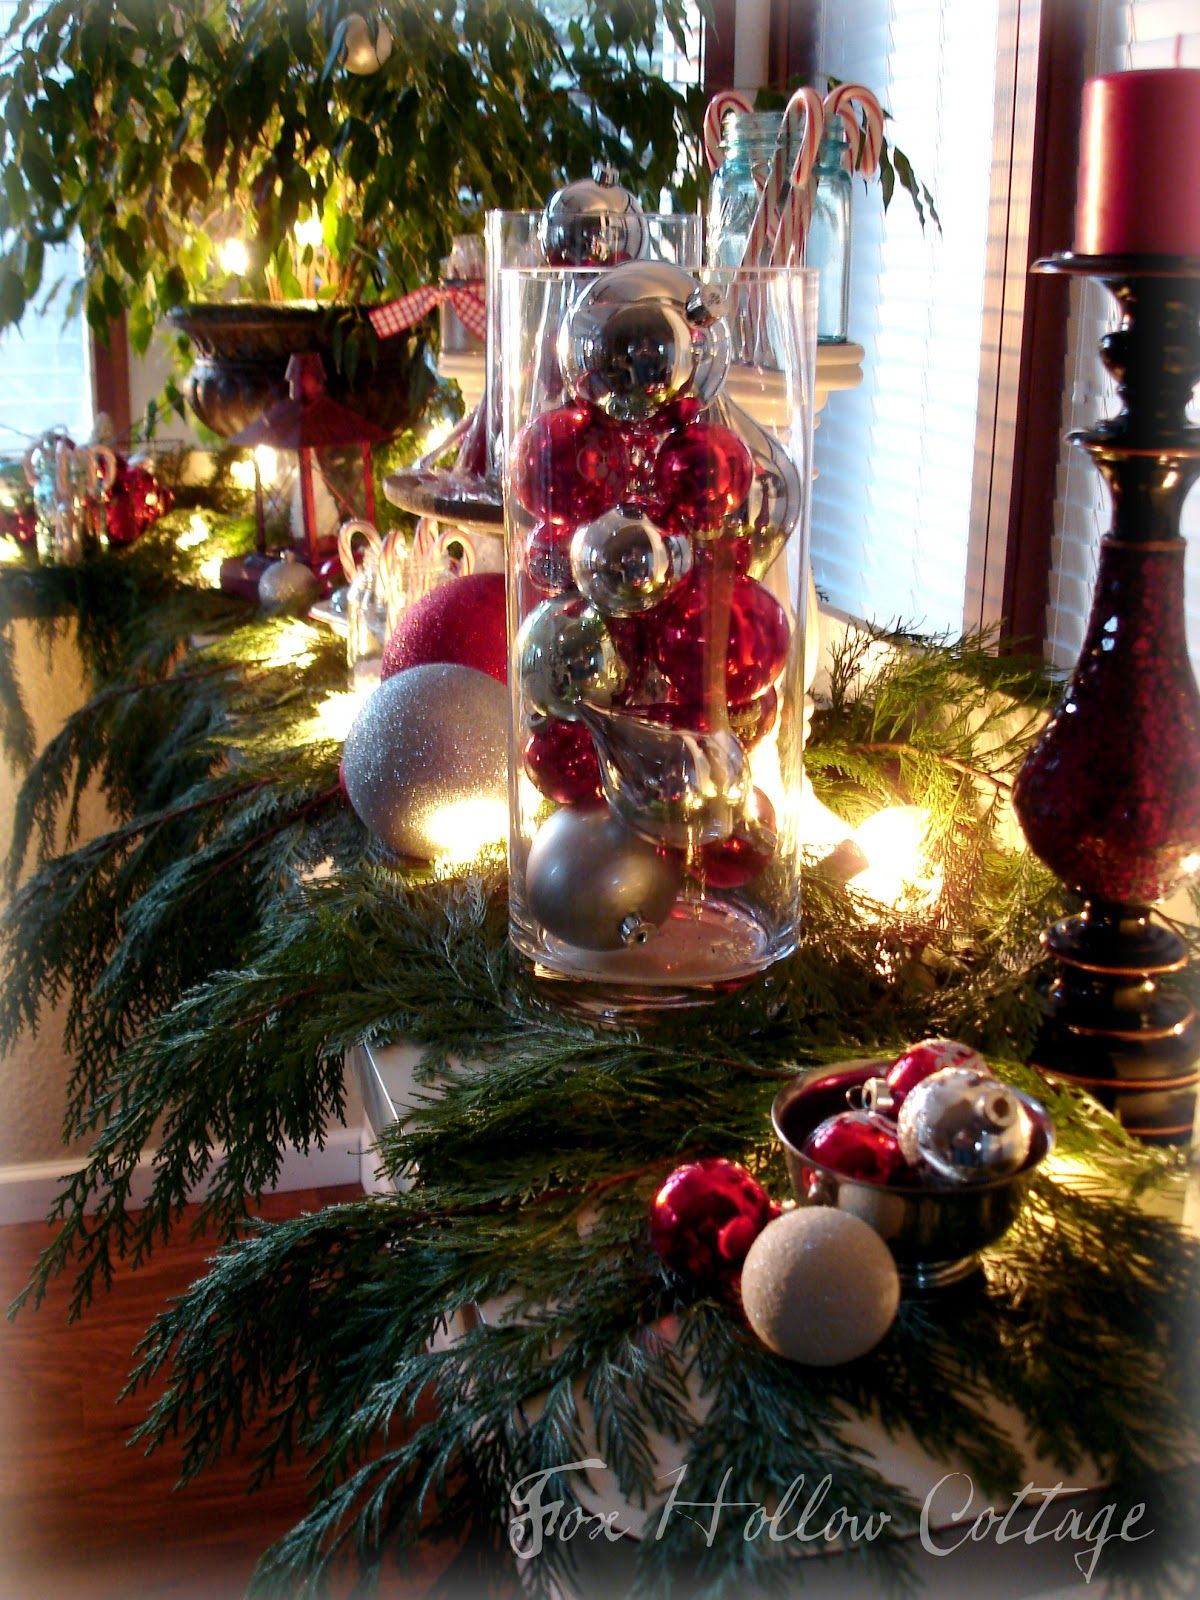 Fox Hollow Cottage: Thrifty Christmas Decorating With Cedar Boughs